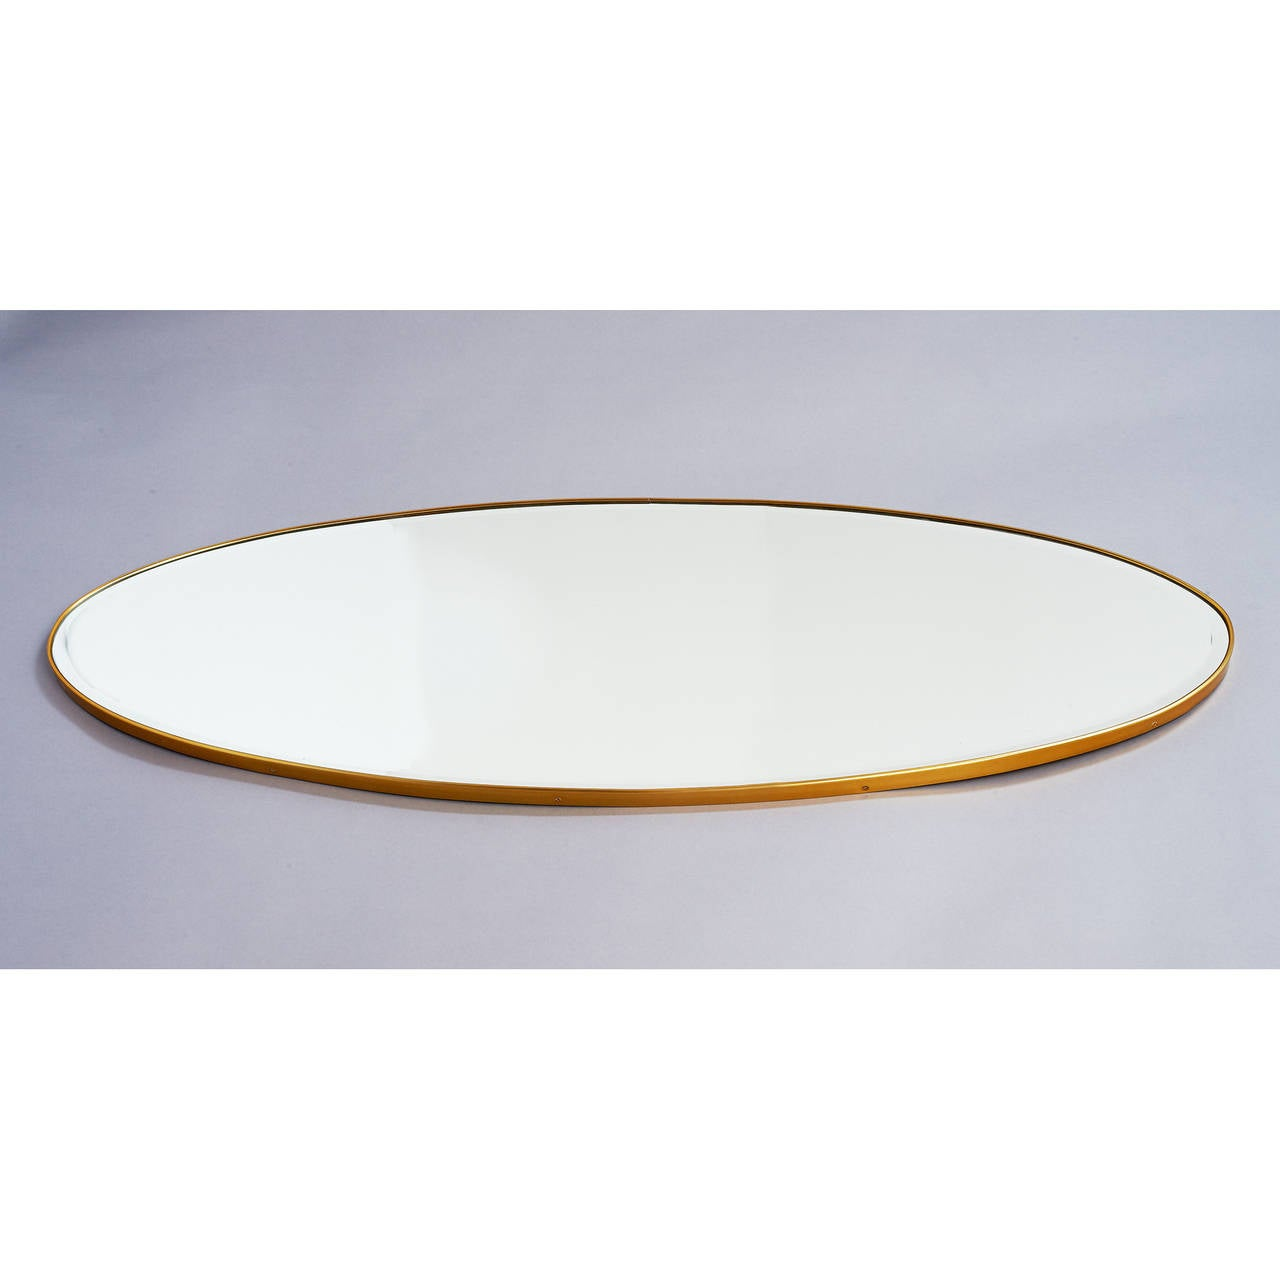 Italy, 1950s.